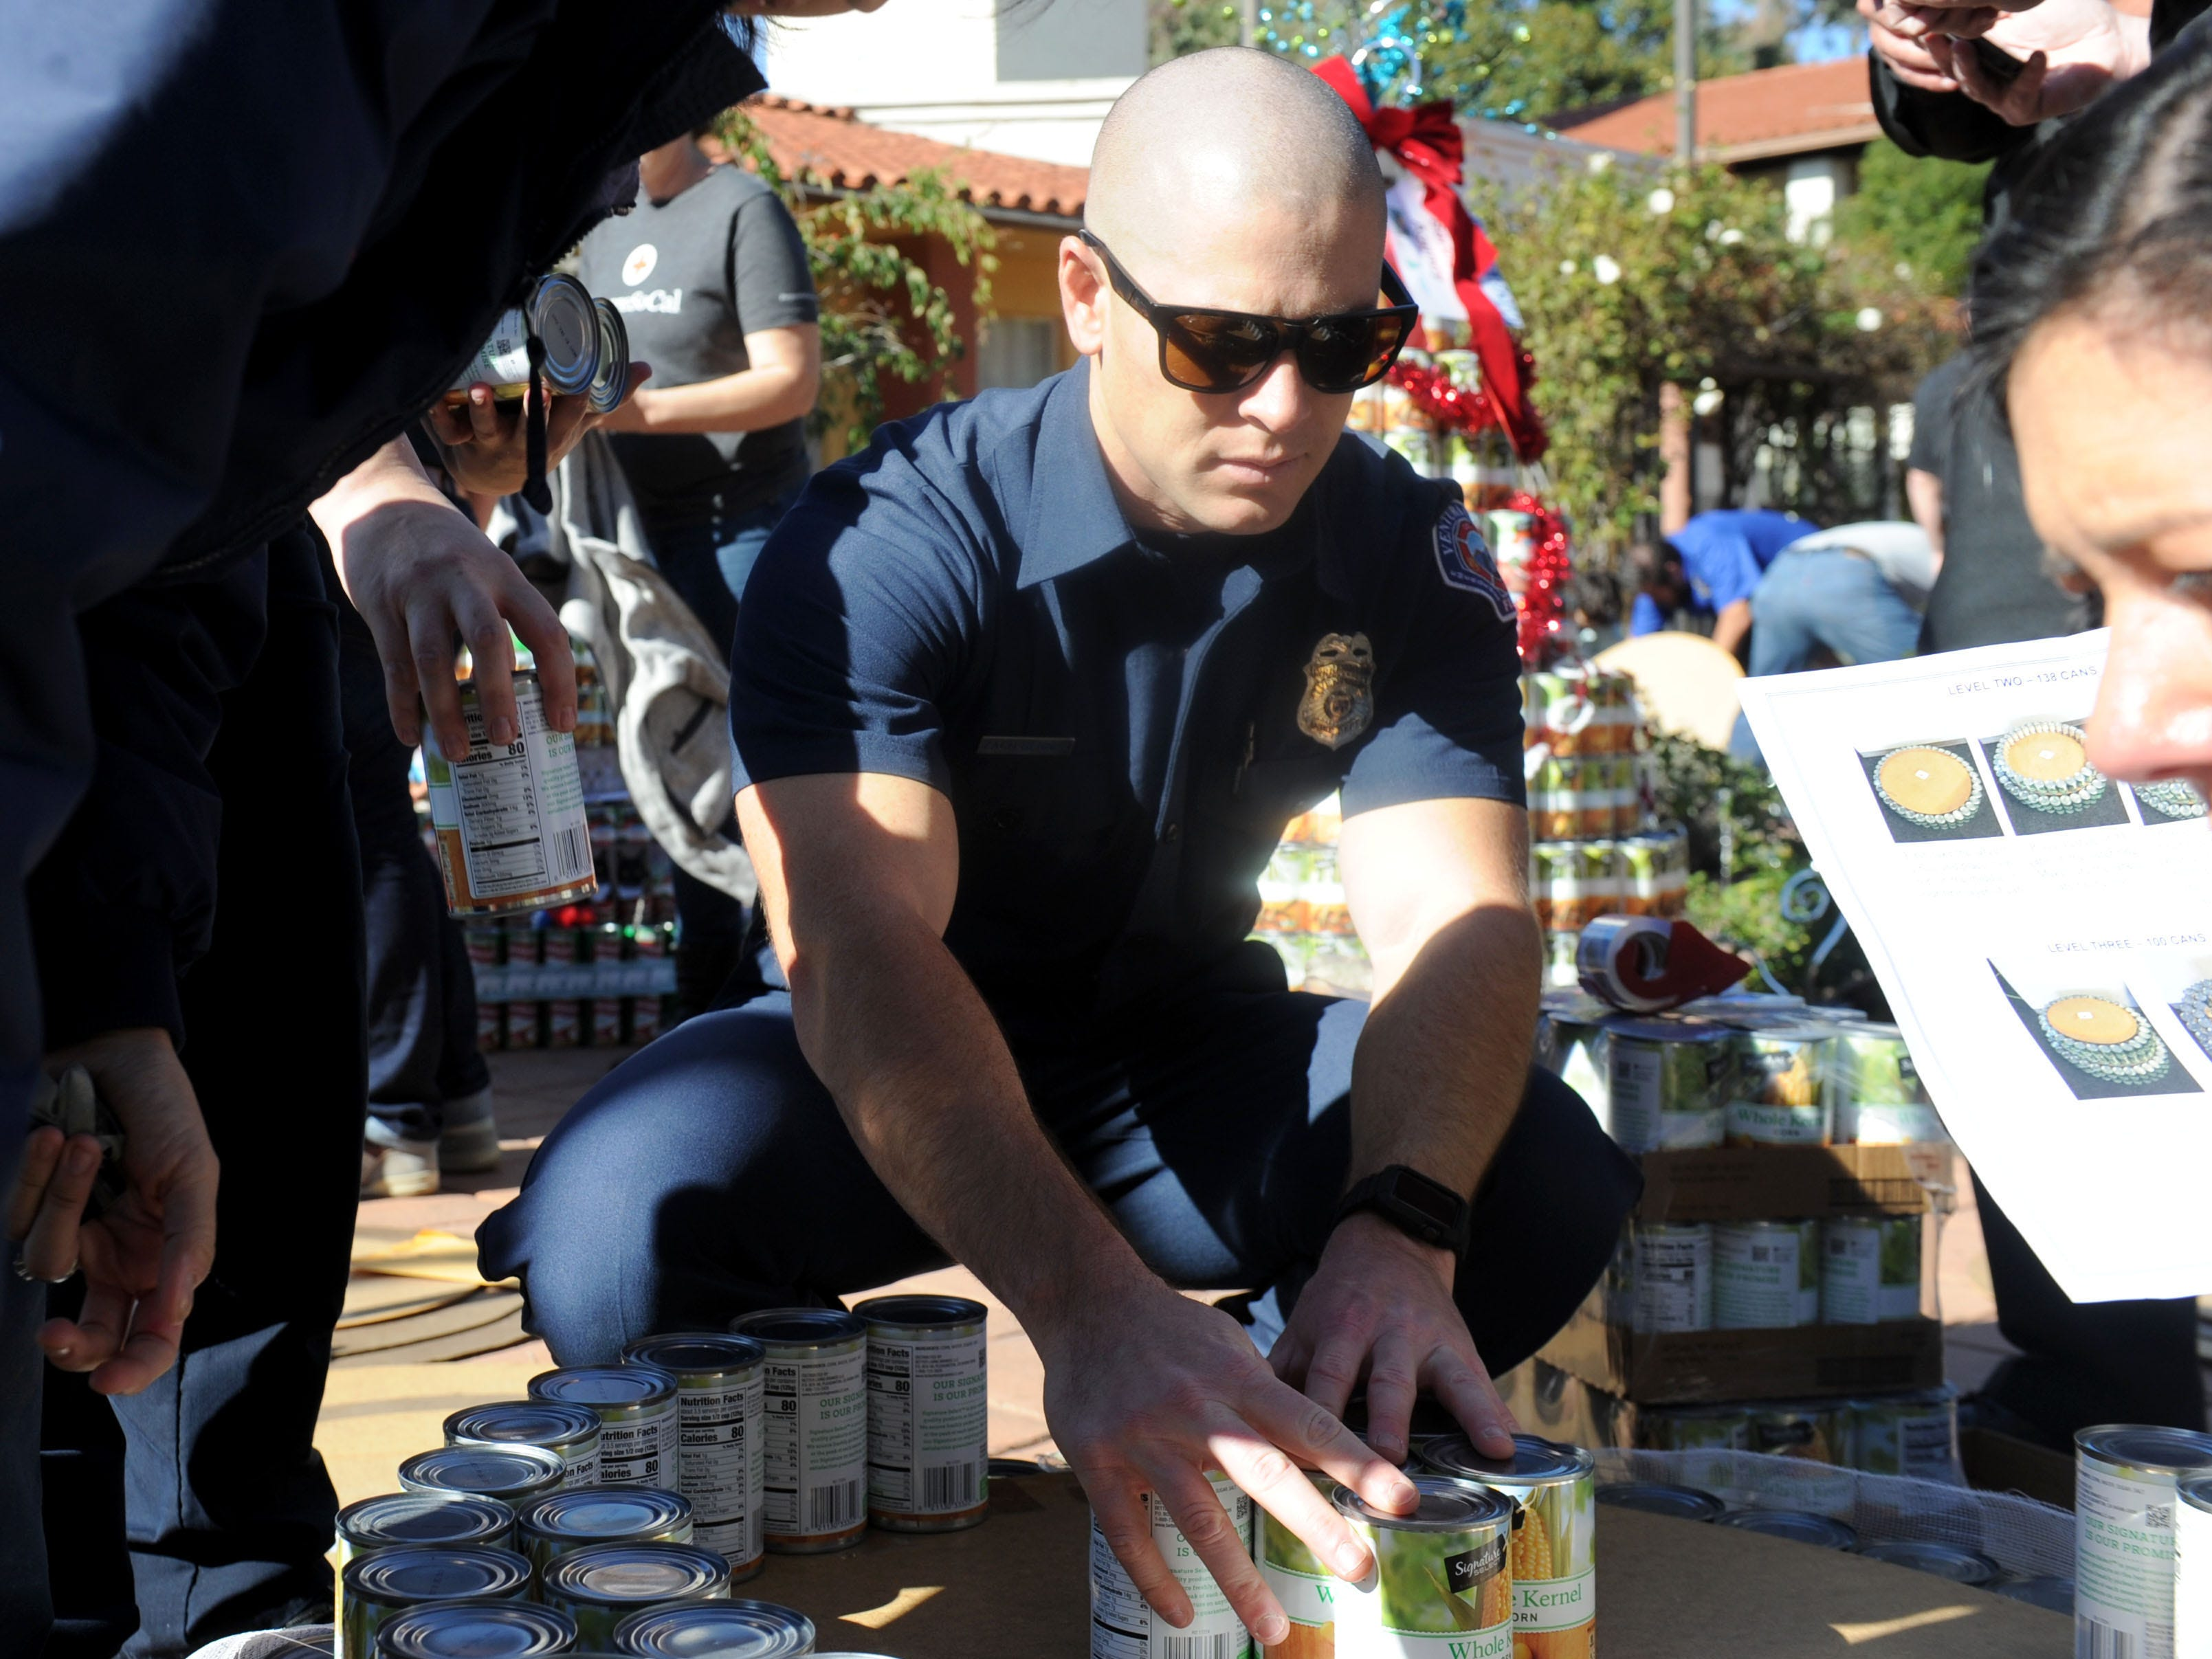 Zach Benner, a Ventura city firefighter, helps build a can tree at FOOD Share's annual CAN-tree drive in downtown Ventura at Figueroa Plaza. Hero Rowwas reserved for first responders, who came out to be a part of the drive.